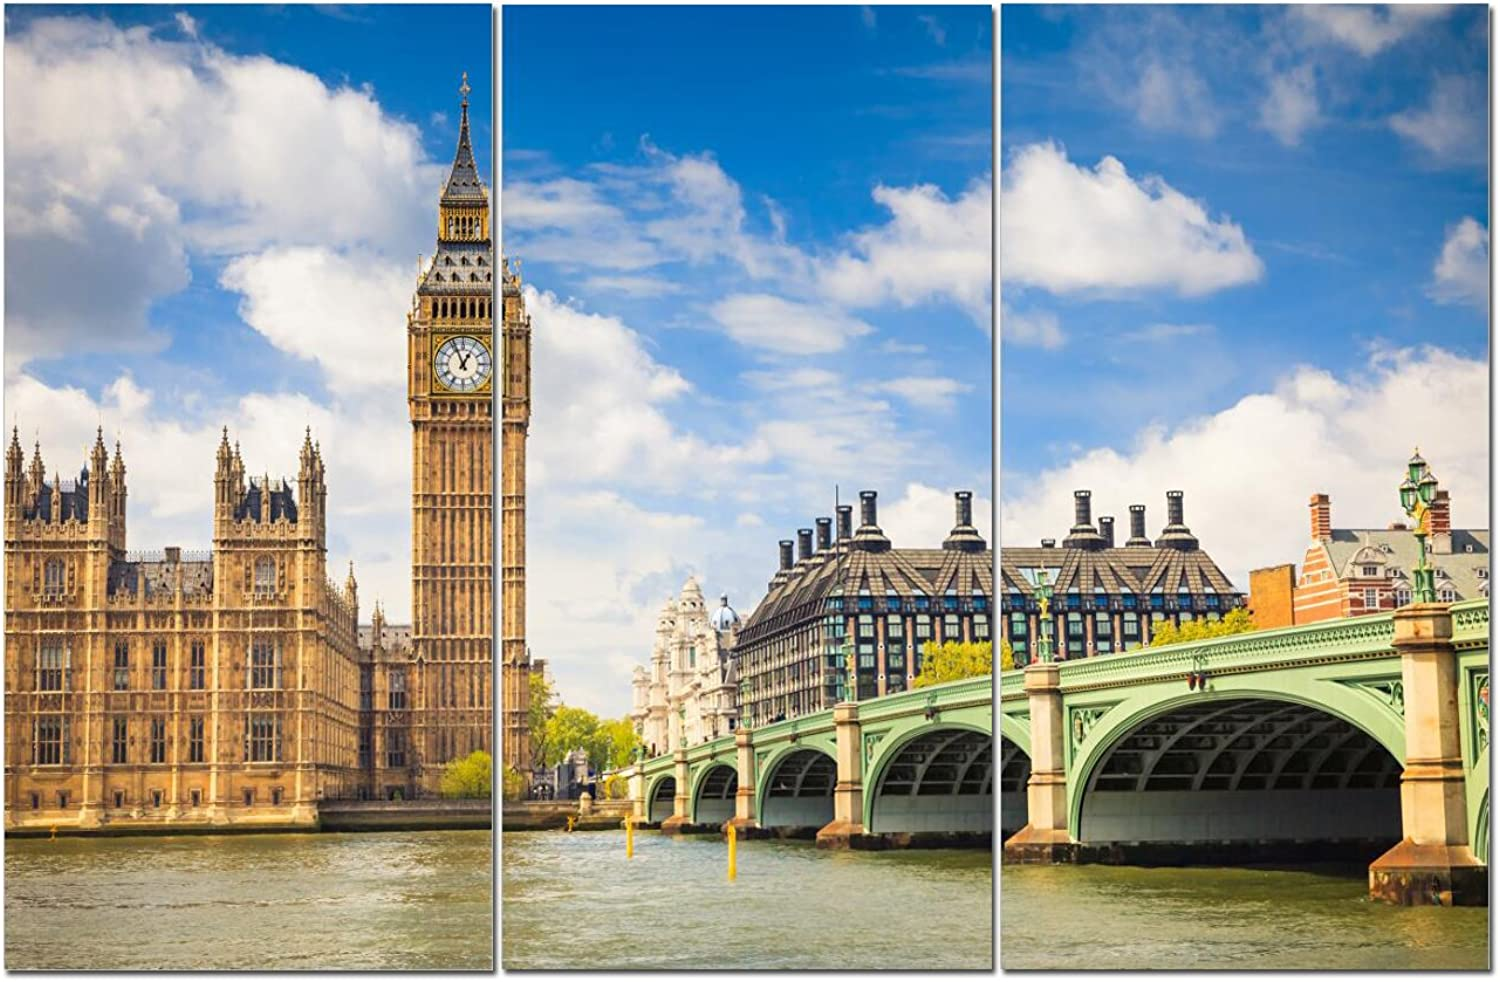 Canvas Wall Art Decor - 12x24 3 Piece Set (Total 24x36 inch) - London UK City View - Decorative & Modern Multi Panel Split Canvas Prints for Dining & Living Room, Kitchen, Bathroom, Bedroom & Office